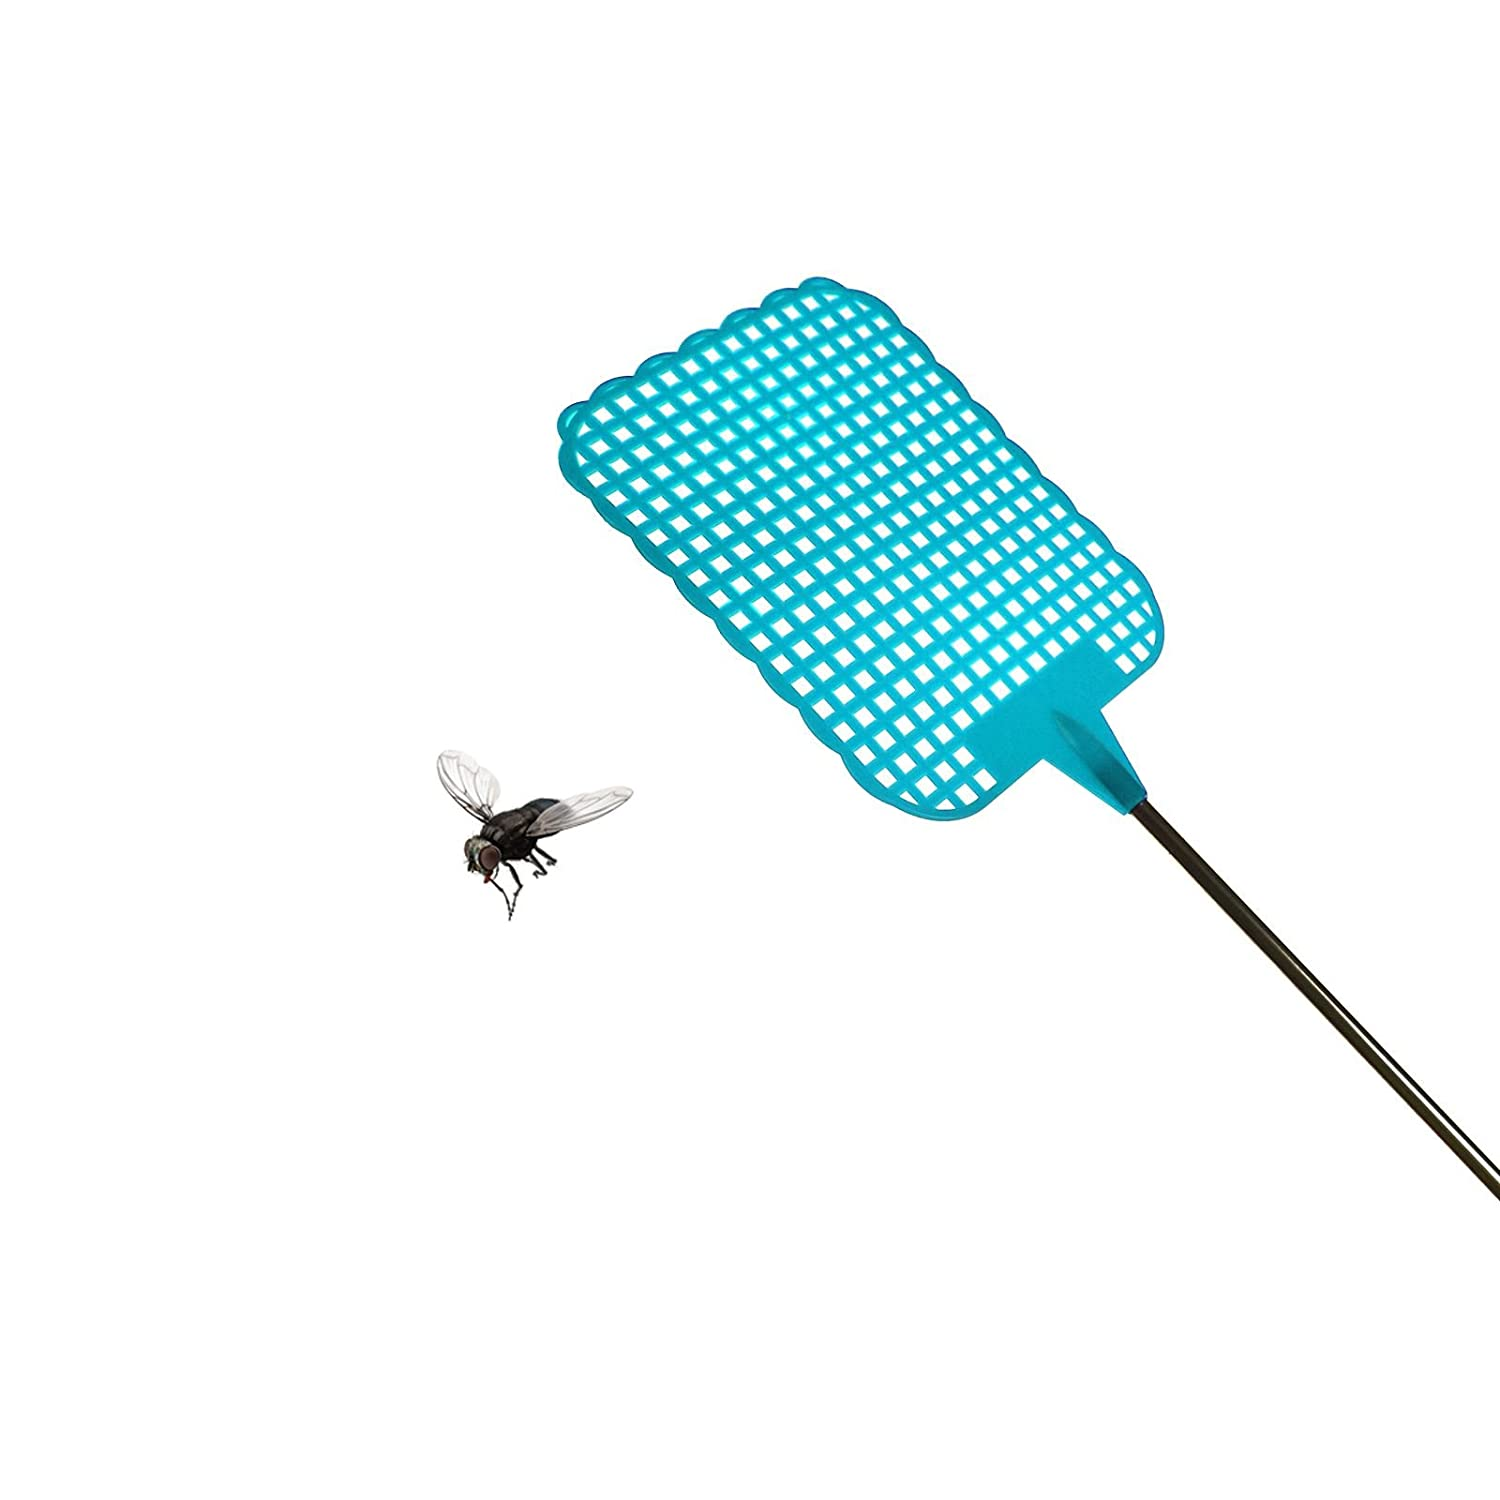 Capacitor How Does This Mosquito Zapper Circuit Work Electrical Asab 70cm Telescopic Fly Swatter Extendible Bug Wasp Bee Killer Flexible Plastic Insect Catcher Swat Head Blue Kitchen Home